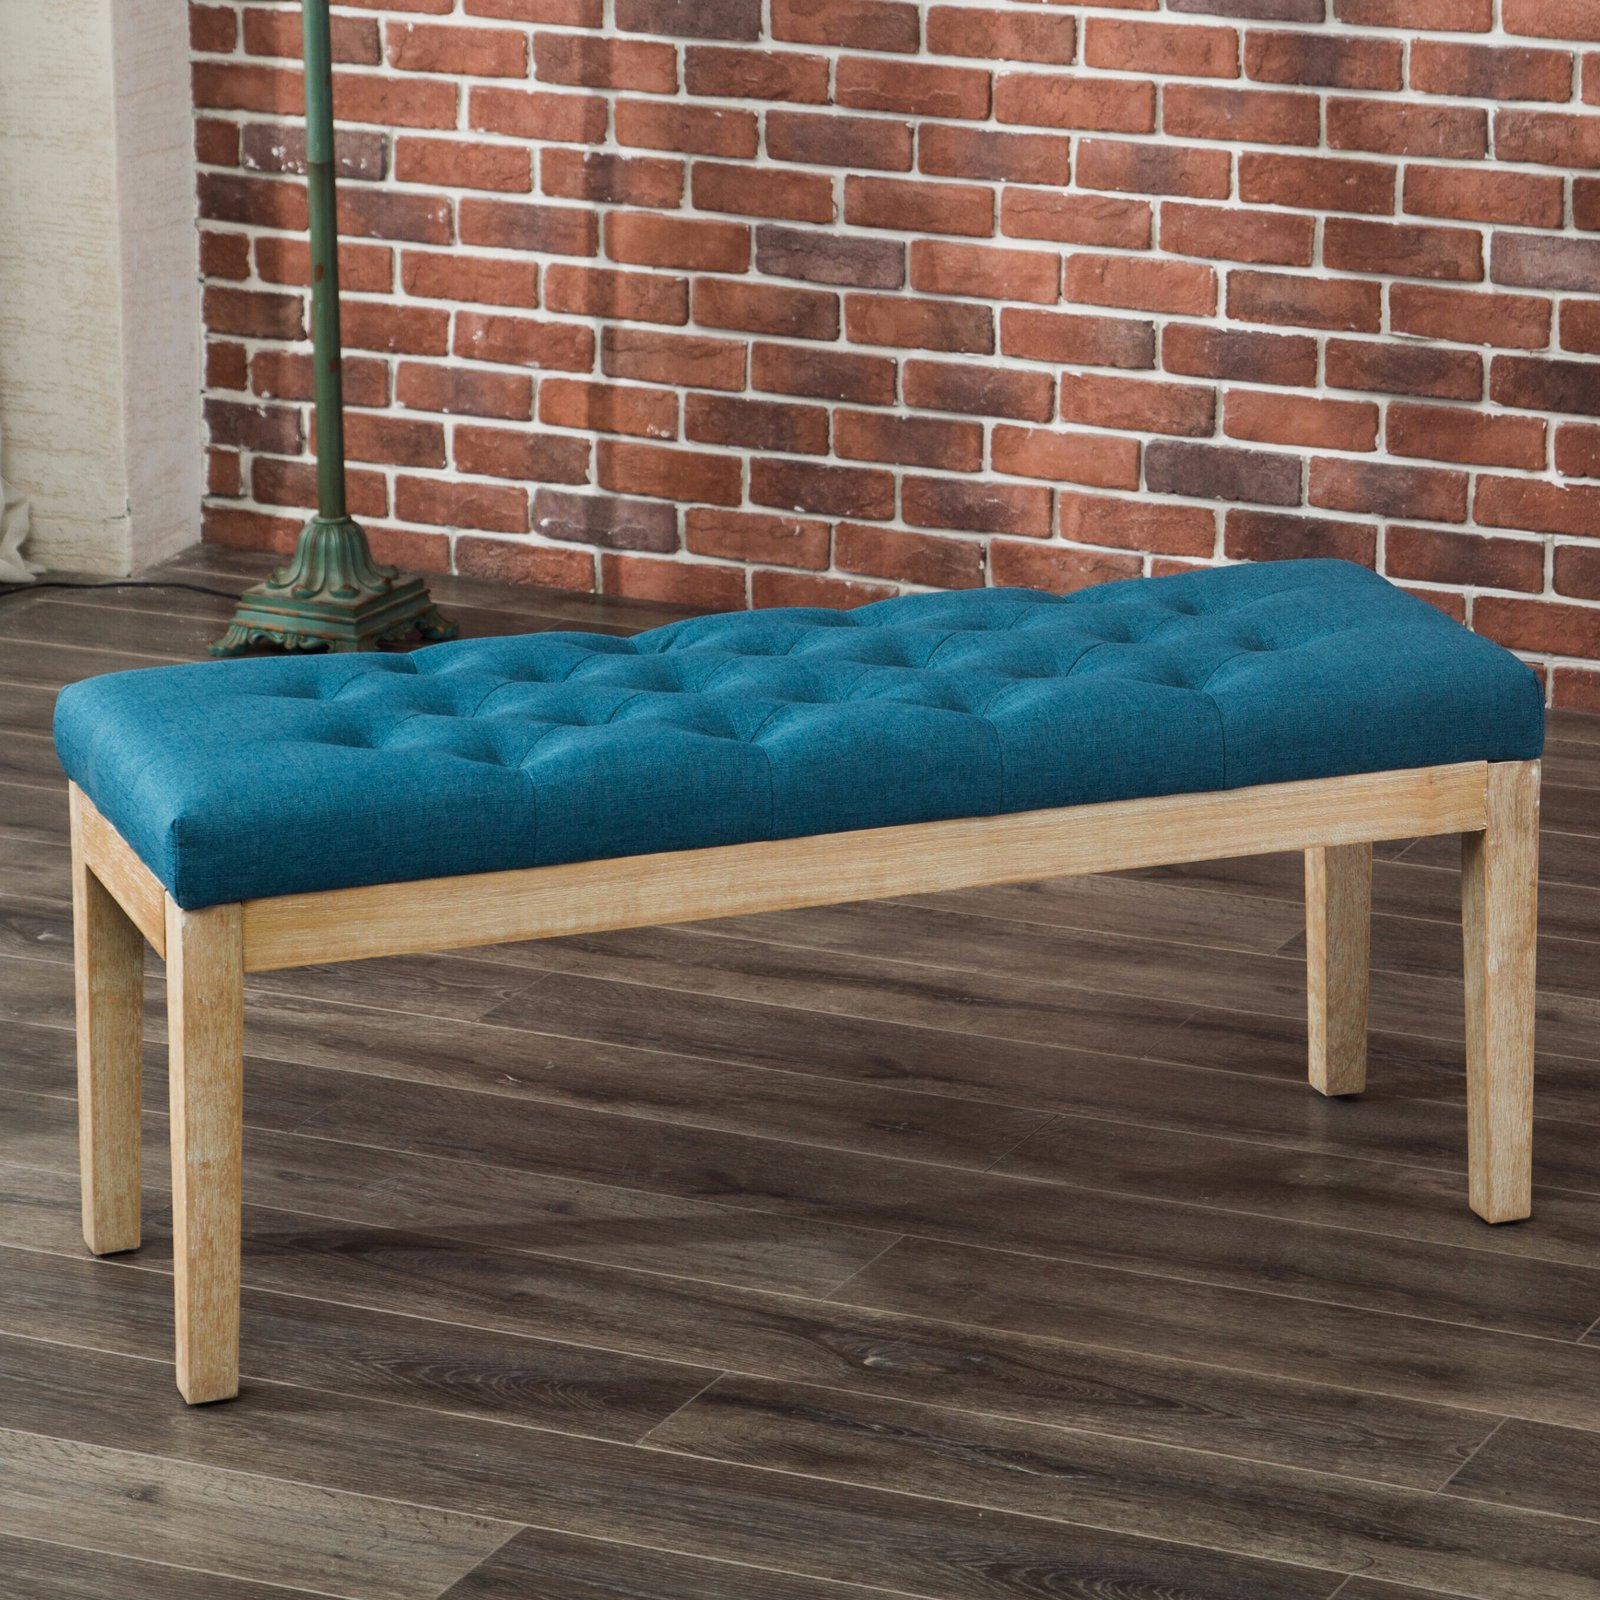 Roundhill Mod Urban Style Solid Wood Button Tufted Fabric Dining Bench, Blue